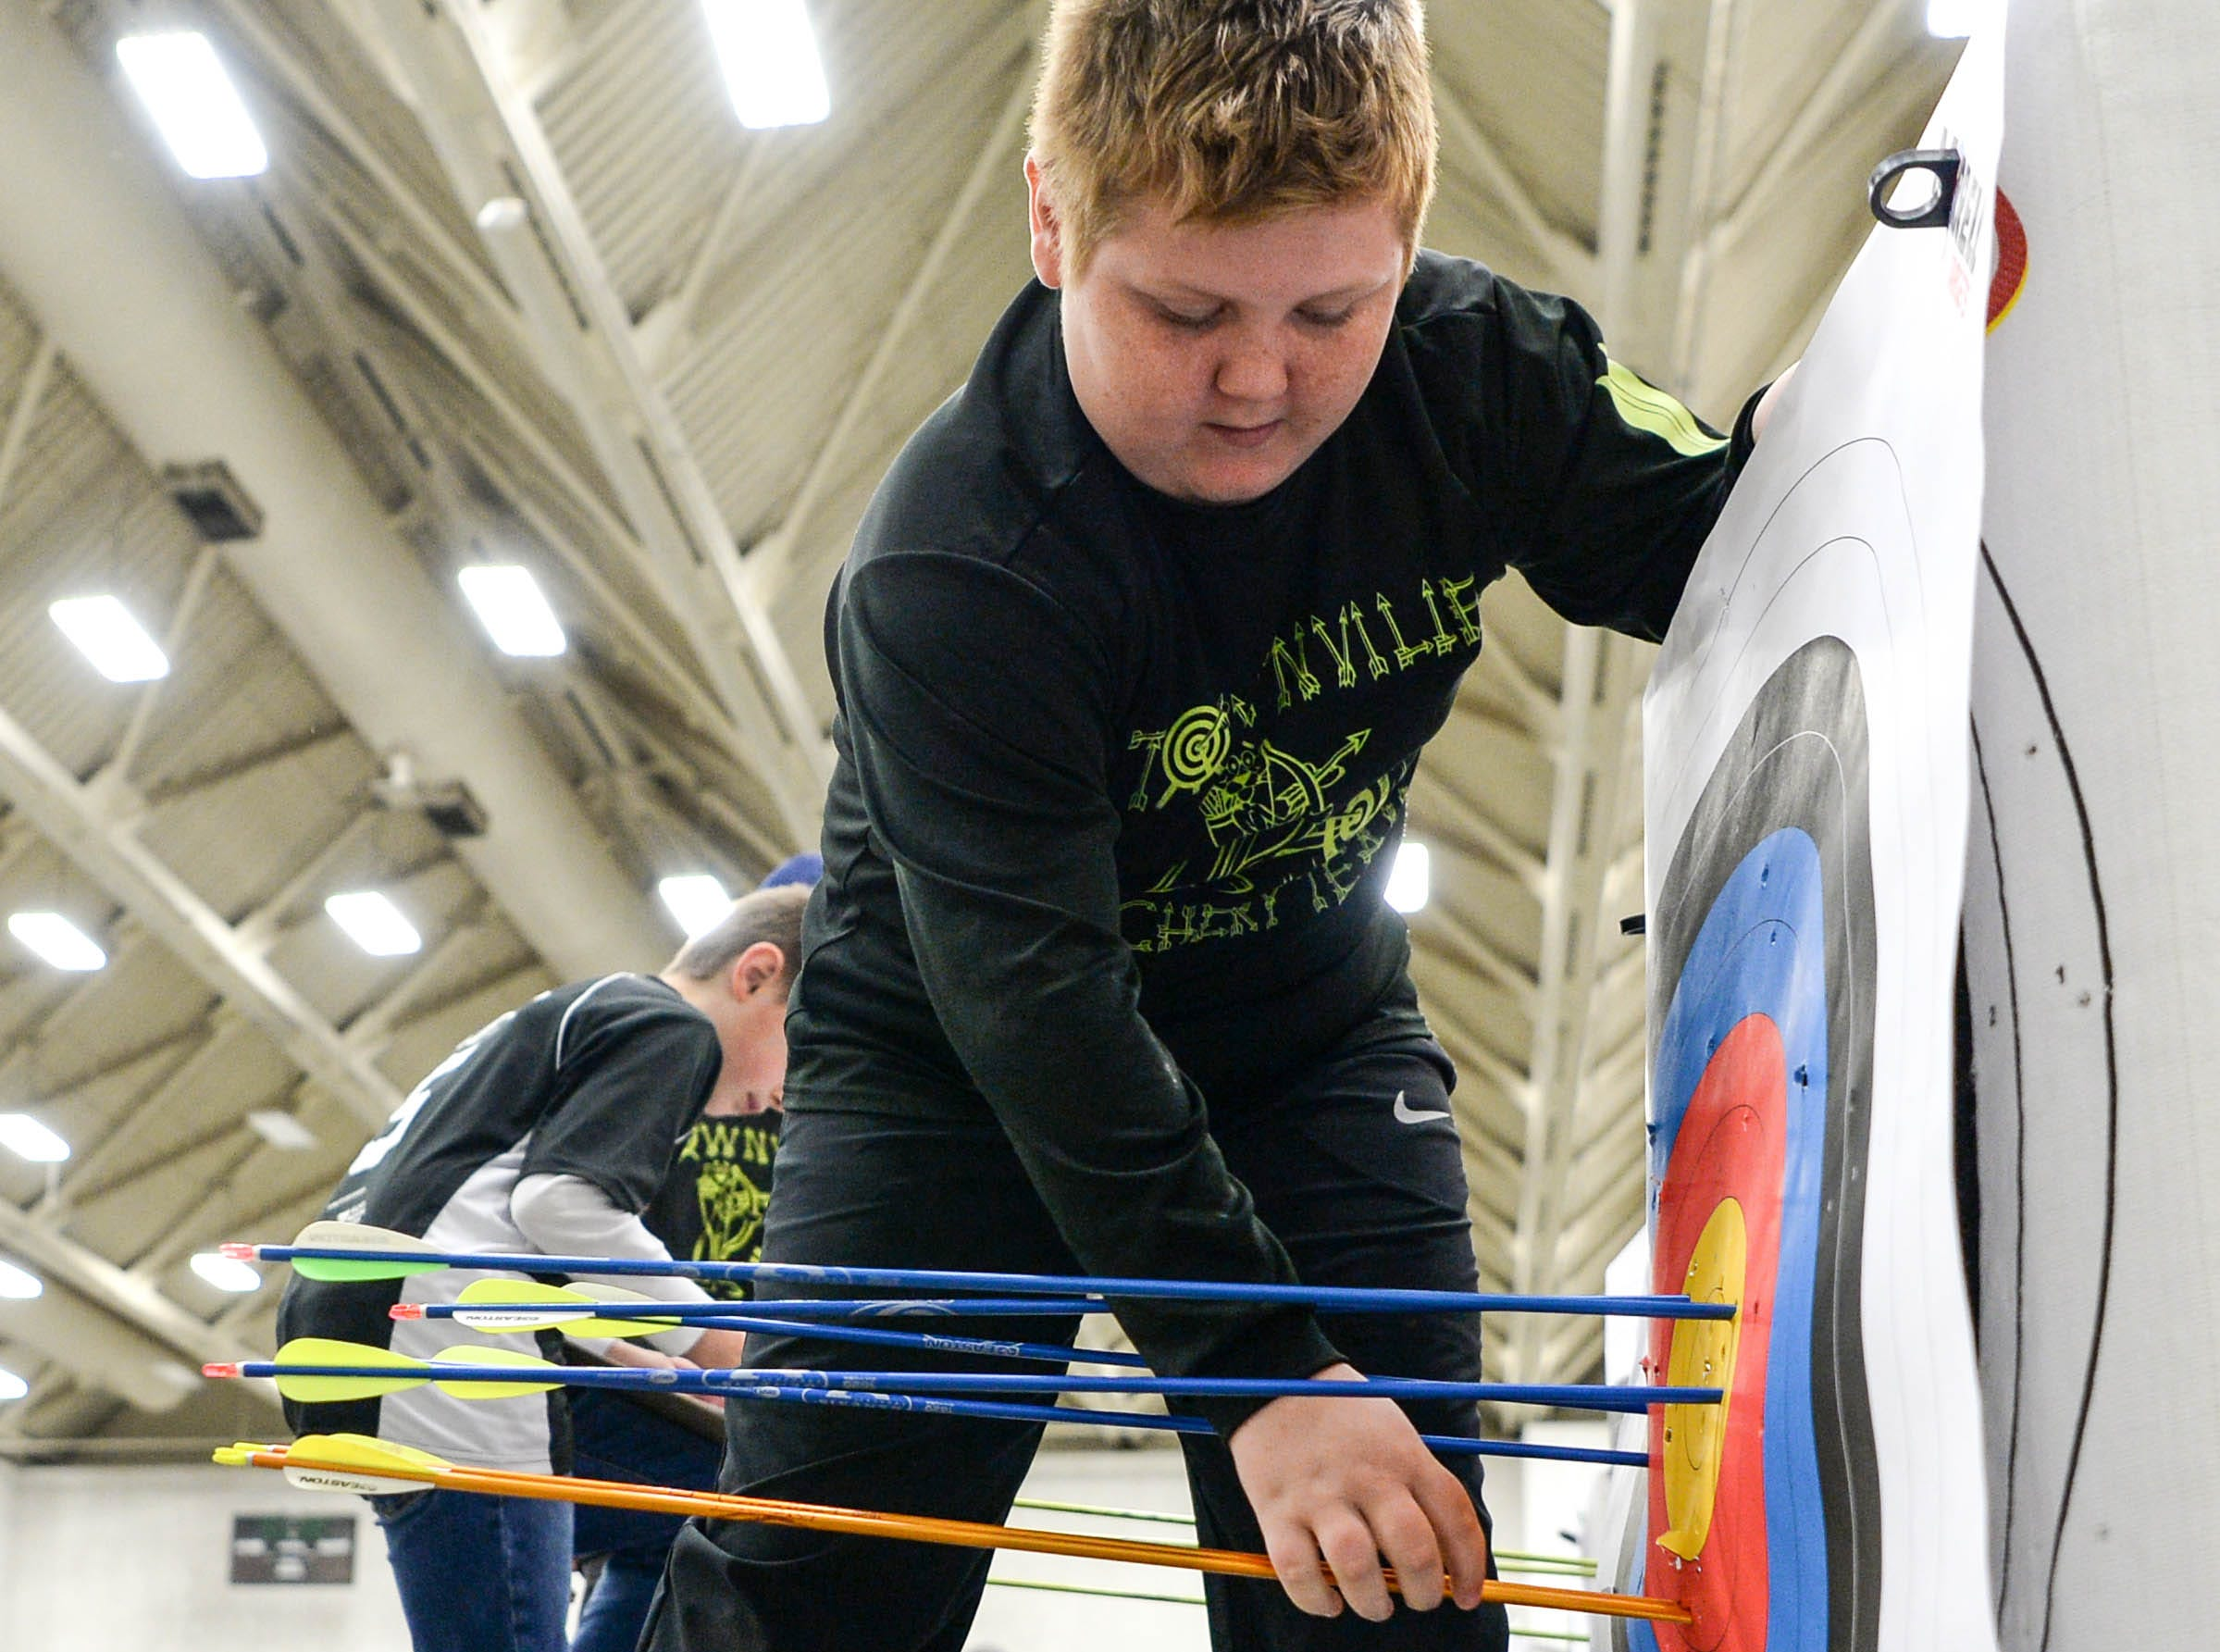 Deavan Alewine, a fourth-grade Townville Elementary School student, pulls one of his five arrow shafts from the target during the South Carolina Department of Natural Resources regional National Archery in the Schools Program (NASP) regional competition at the Anderson Civic Center Wednesday.  The program, which awards $50,000 in scholarships to high school seniors, is a joint venture between state departments of Education and Wildlife. The competition in Anderson, leading up to the state finals March 26-28 in Sumter, had 950 children from 14 elementary and 23 high schools around the state.